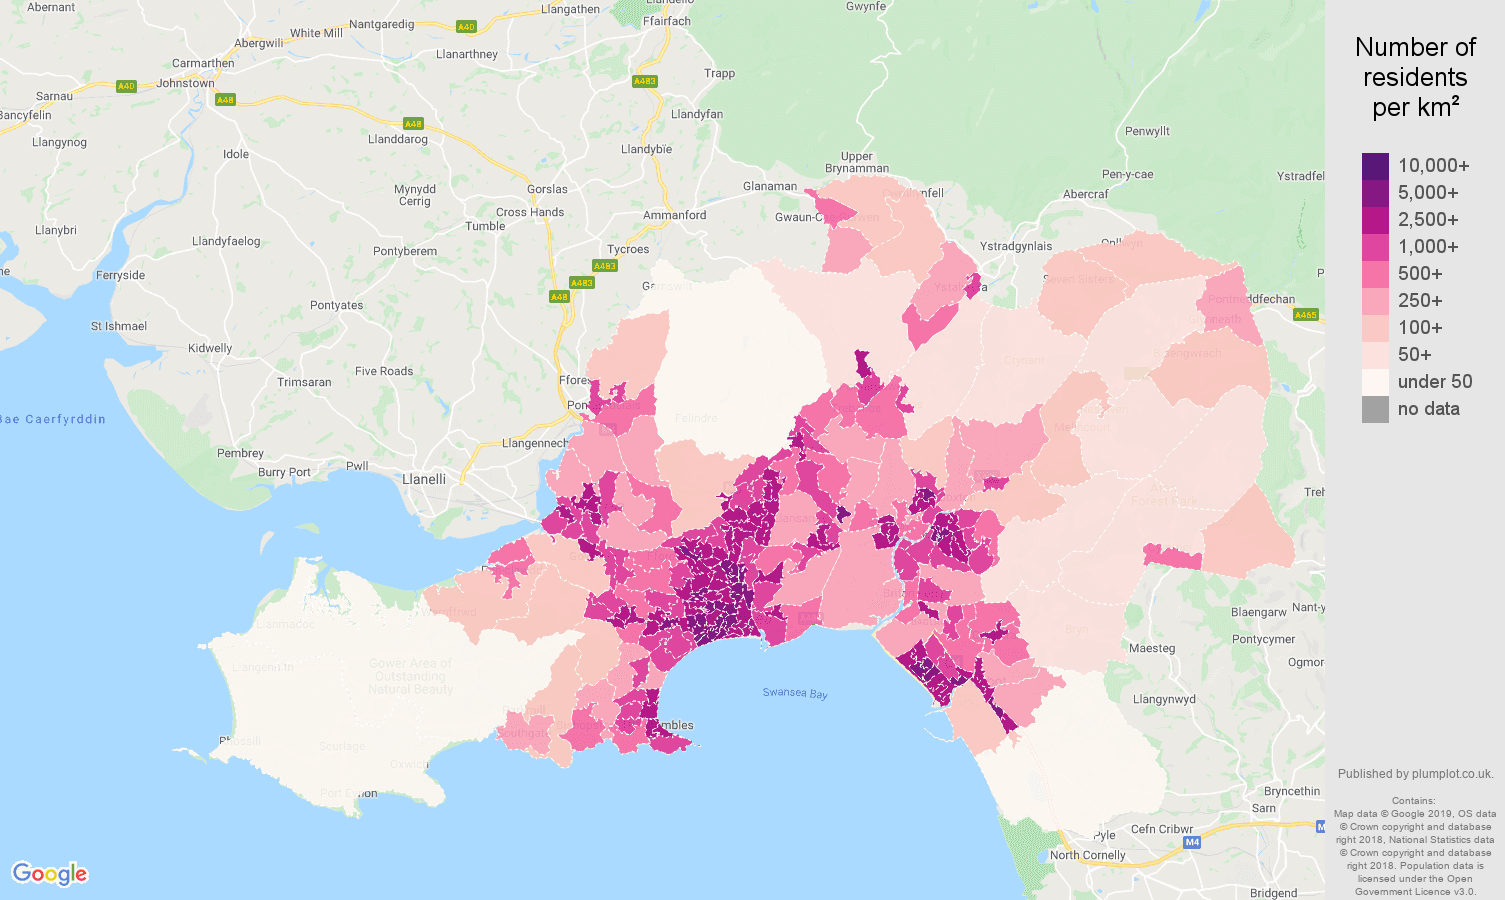 West Glamorgan population density map